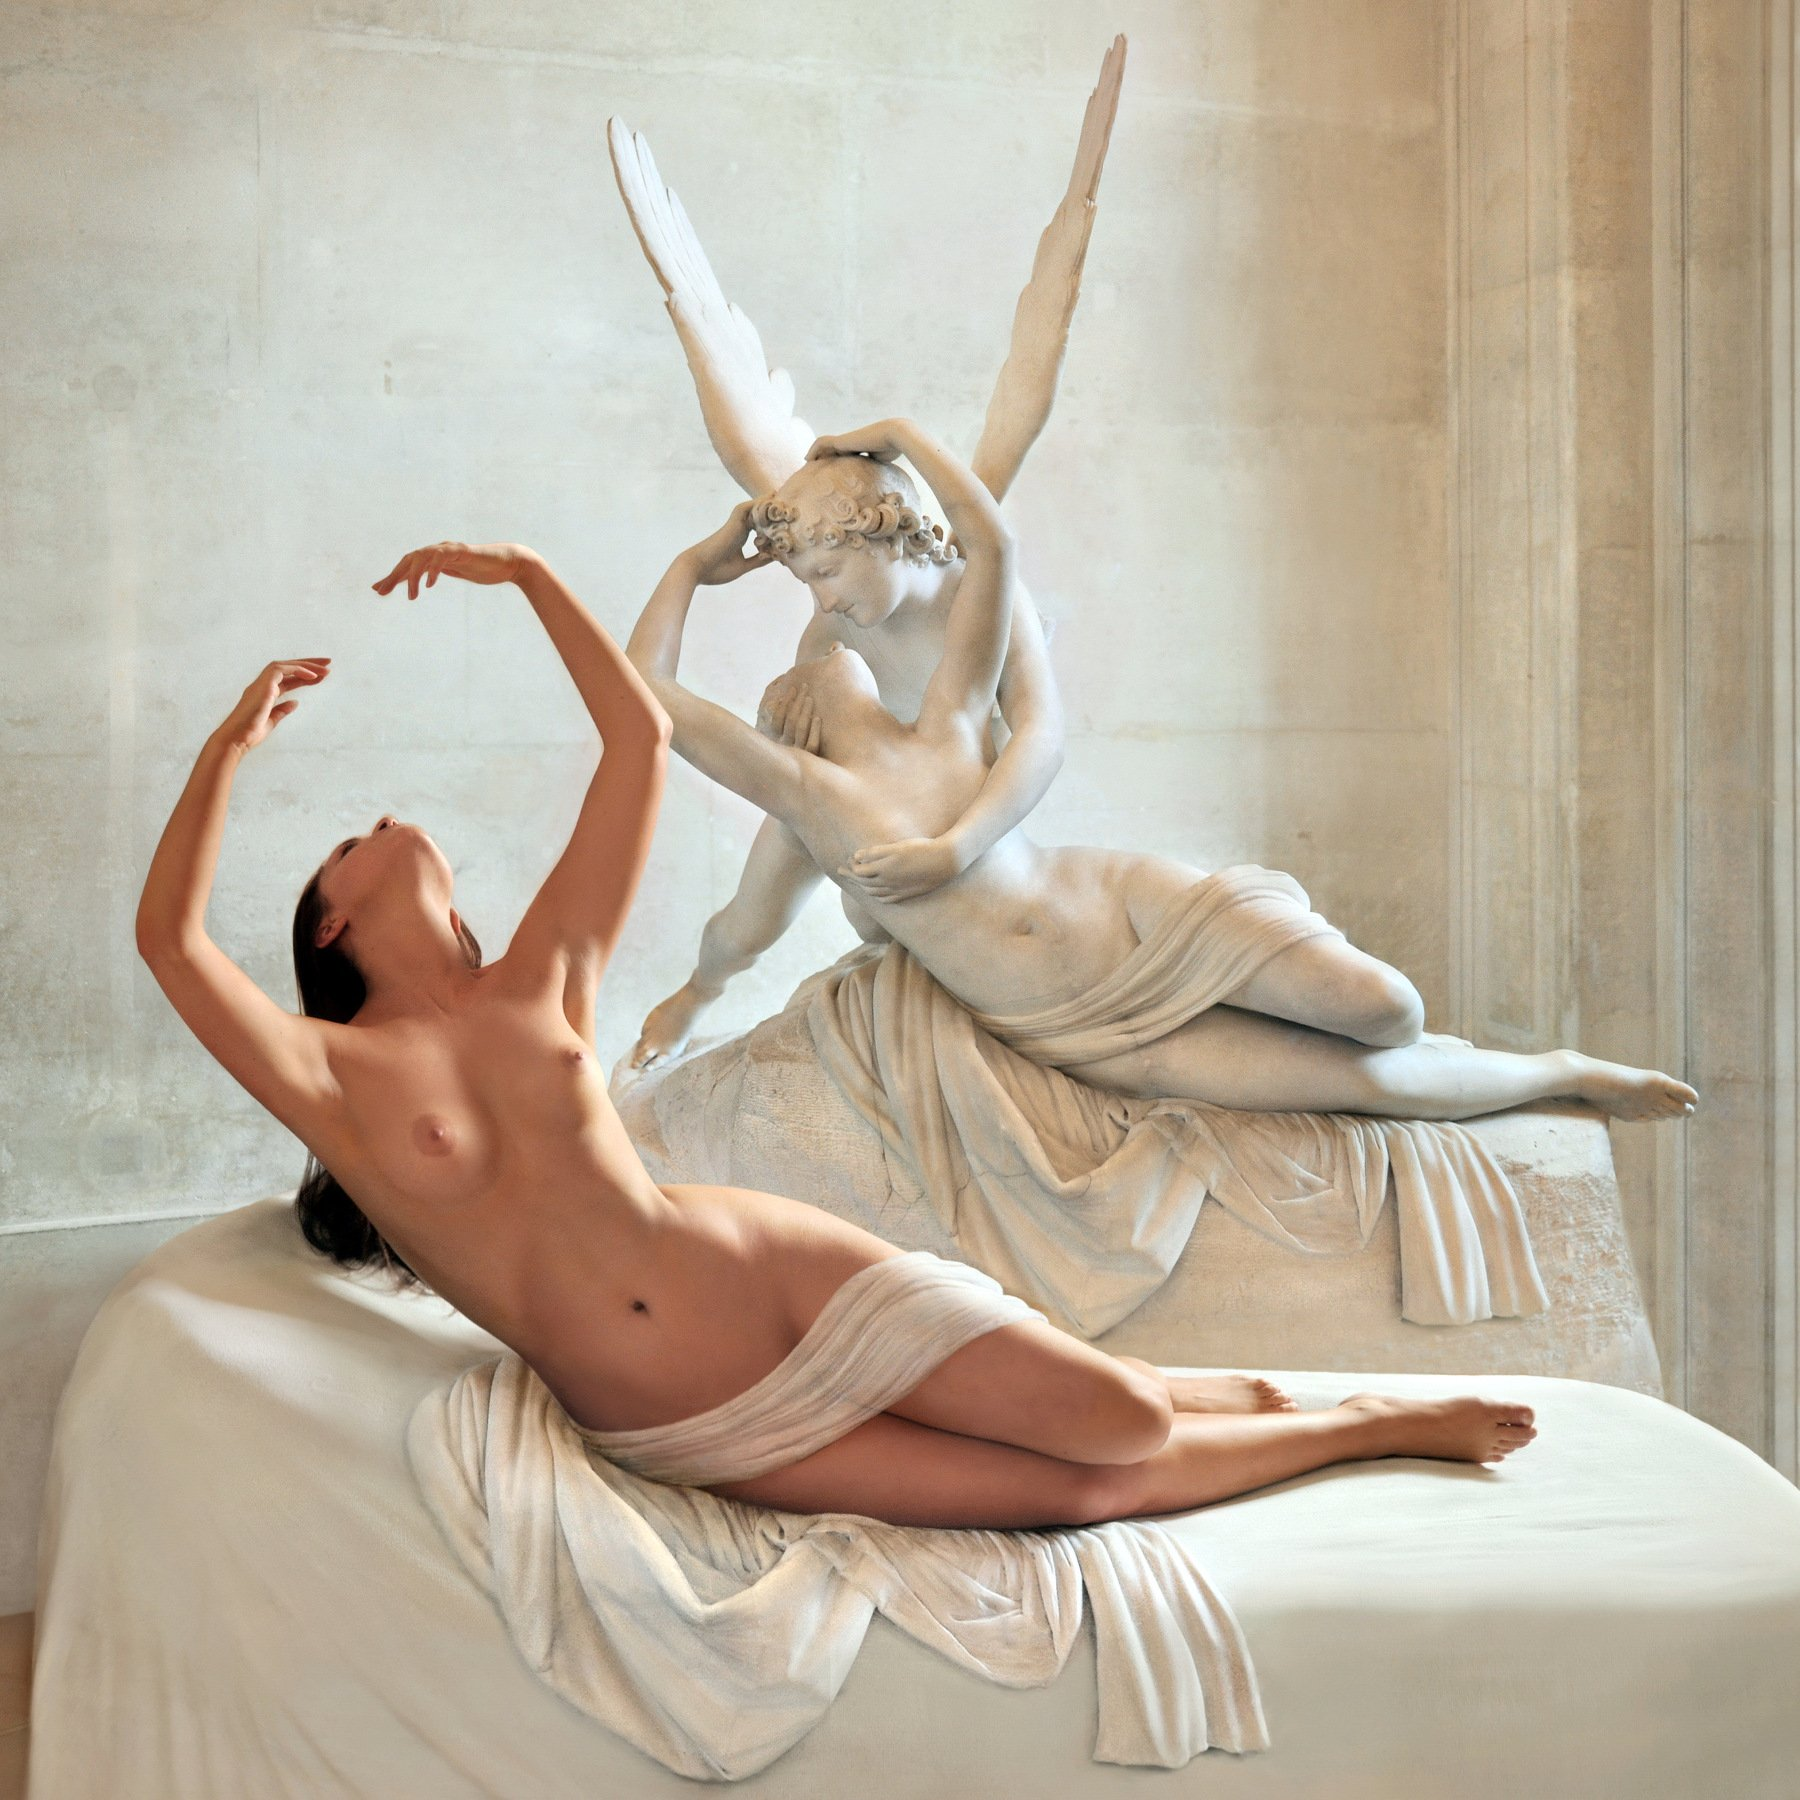 sculpture, art, museum, marble, stone, sleep, love, girl, nude, model, posing, paris, louvre, myth, greek, Endegor